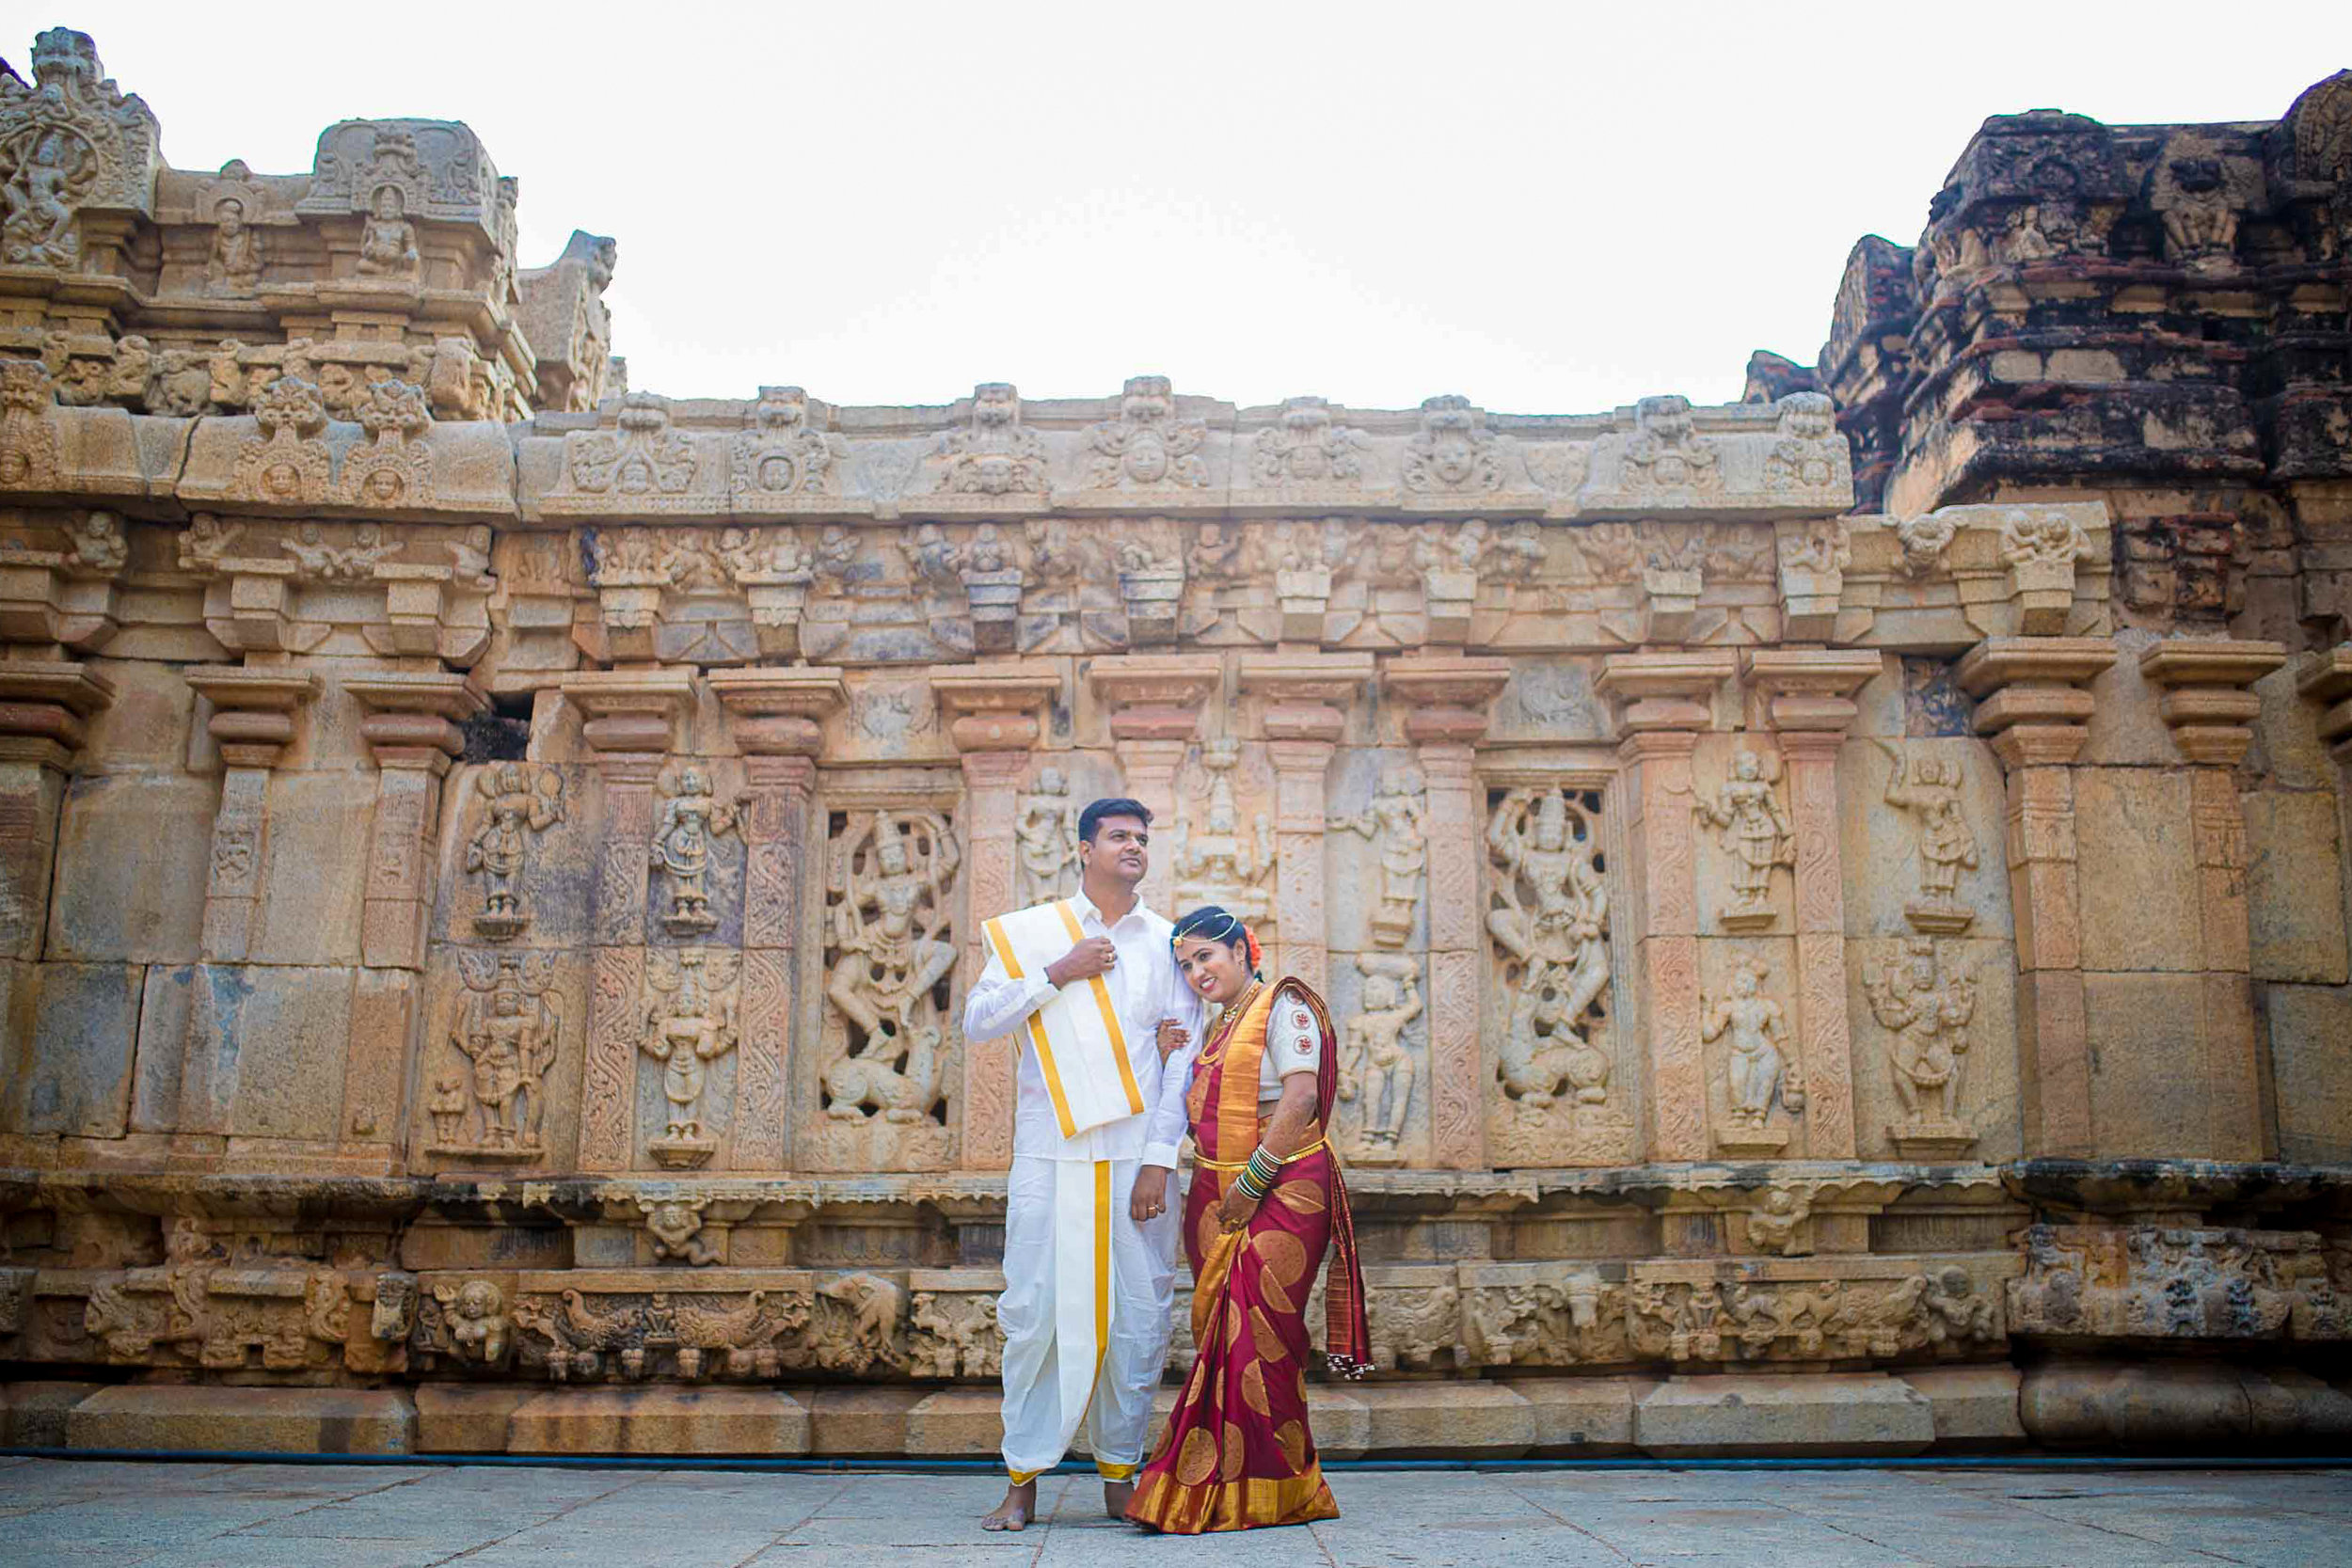 Pixel-Chronicles-Basavaraj_Pooja-bhoganandishwara-temple-Candid-Wedding-Photography-Couple-Photoshoot-9.jpg